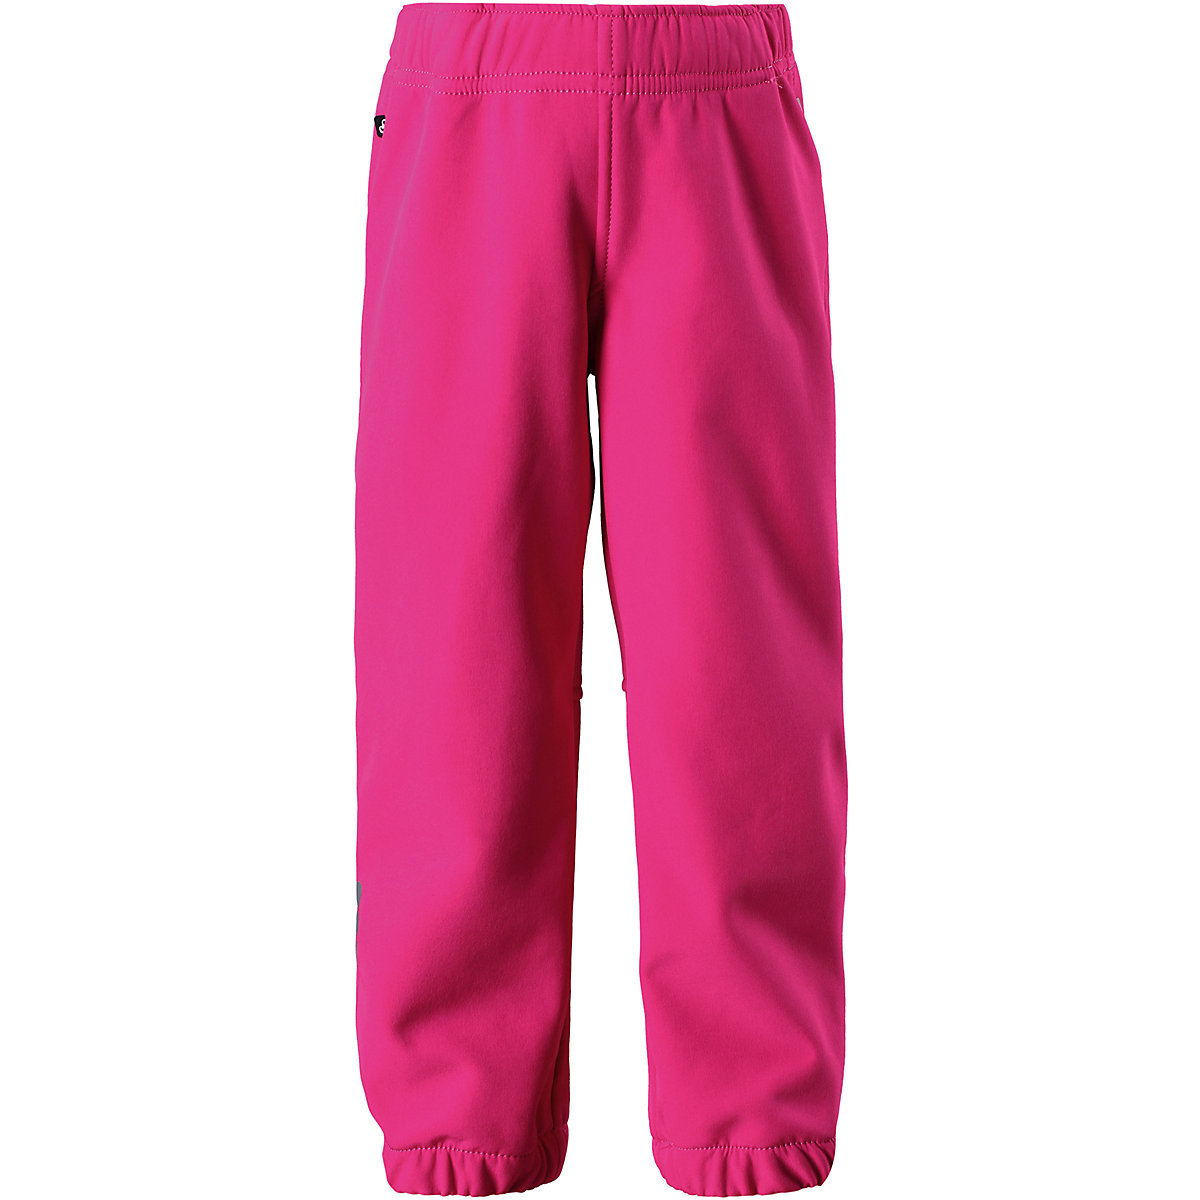 REIMA Pants 8688744 For girls warm Polyester winter girl children clothing santic c04007 outdoor cycling warm polyester spandex fleeces pants for men black xl